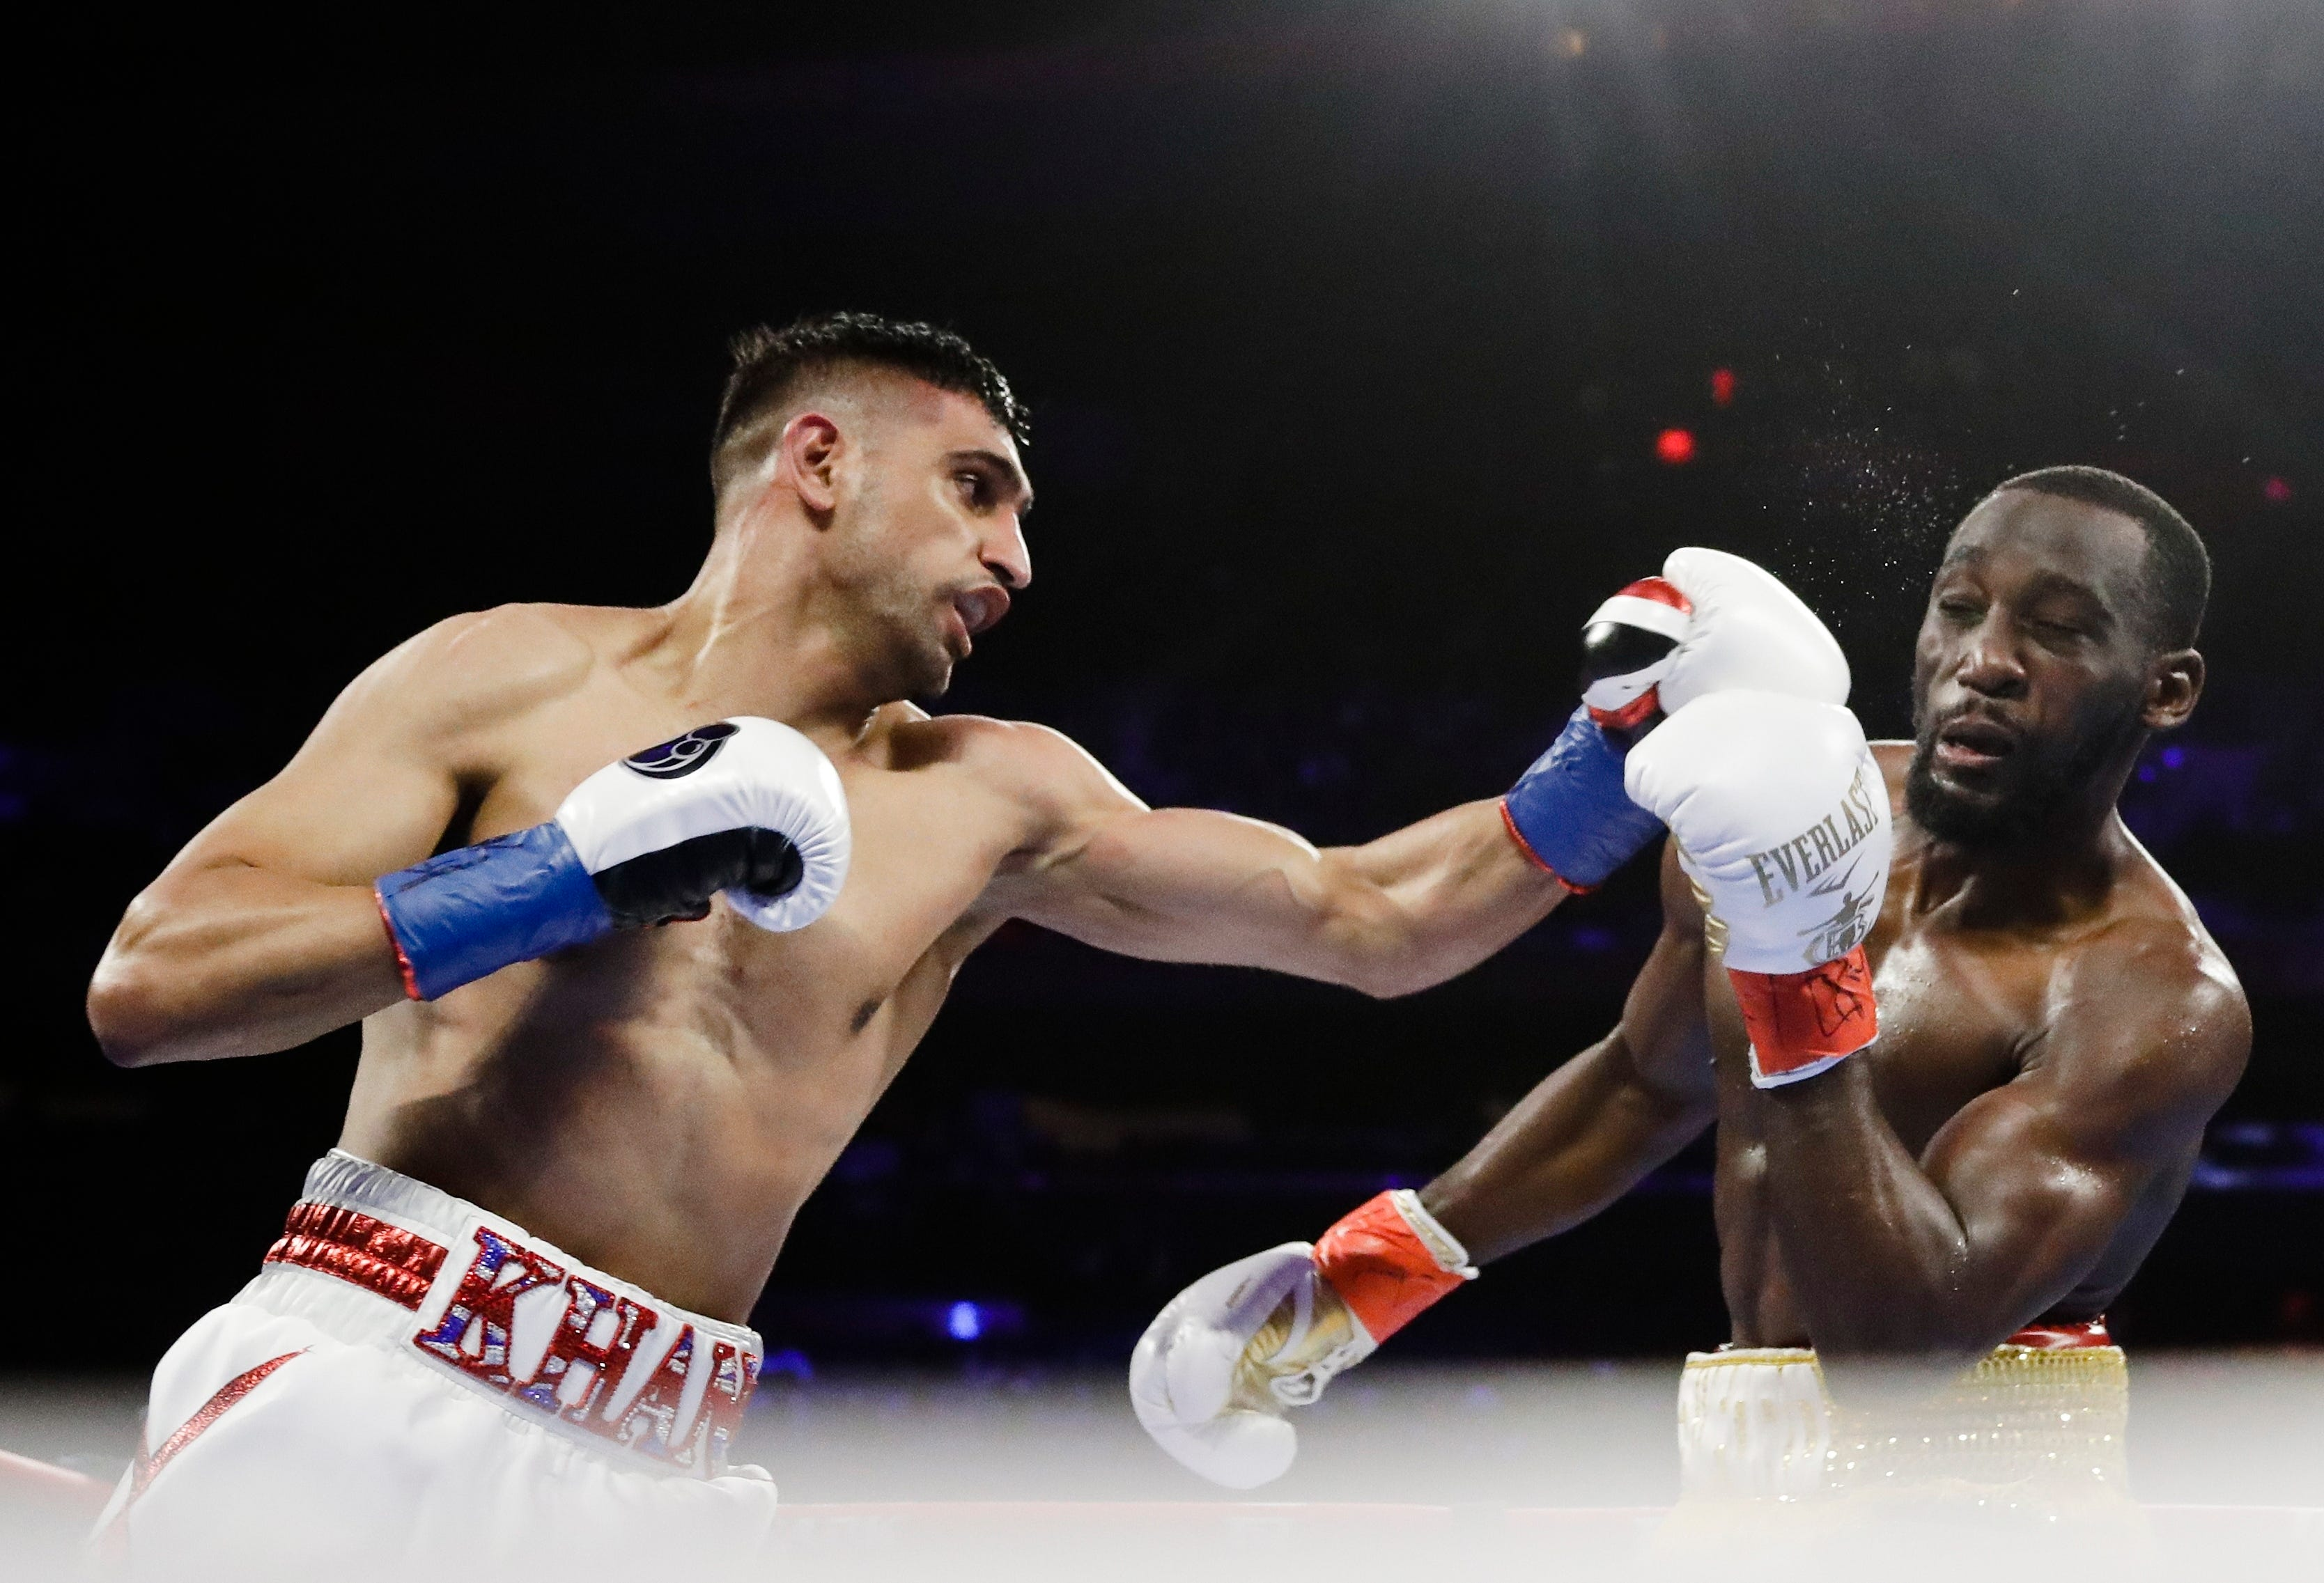 Crawford wins by TKO when Khan doesn't go on after low blow